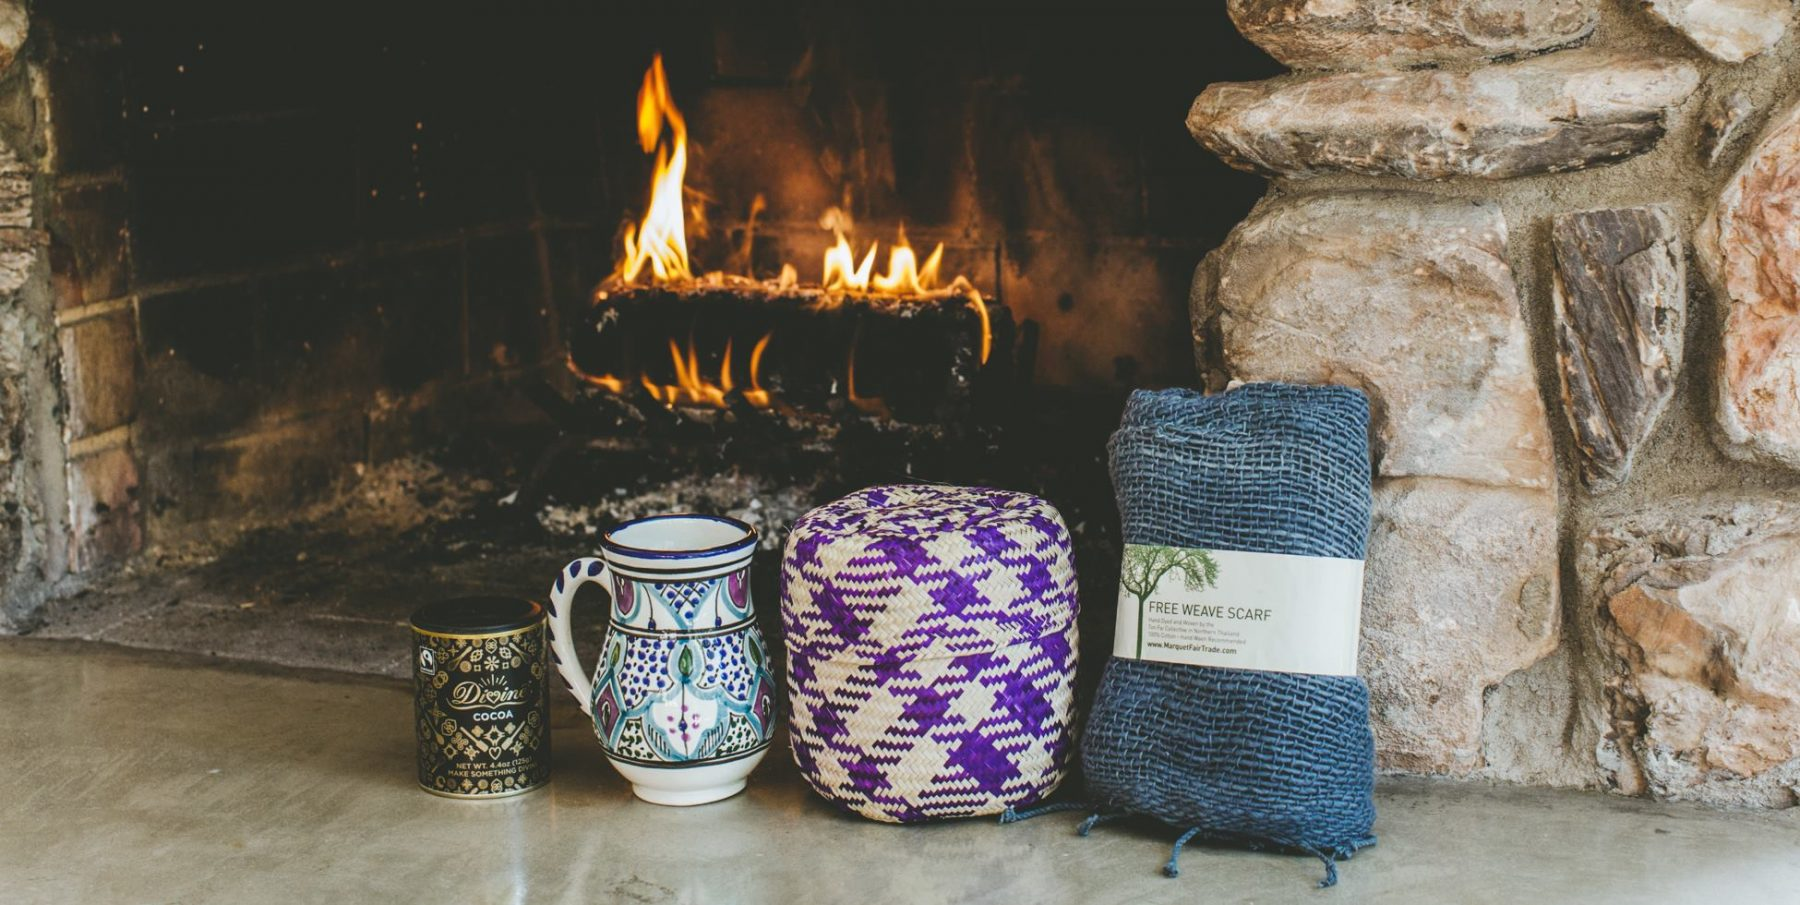 Handmade Gifts from Around the World with GlobeIn